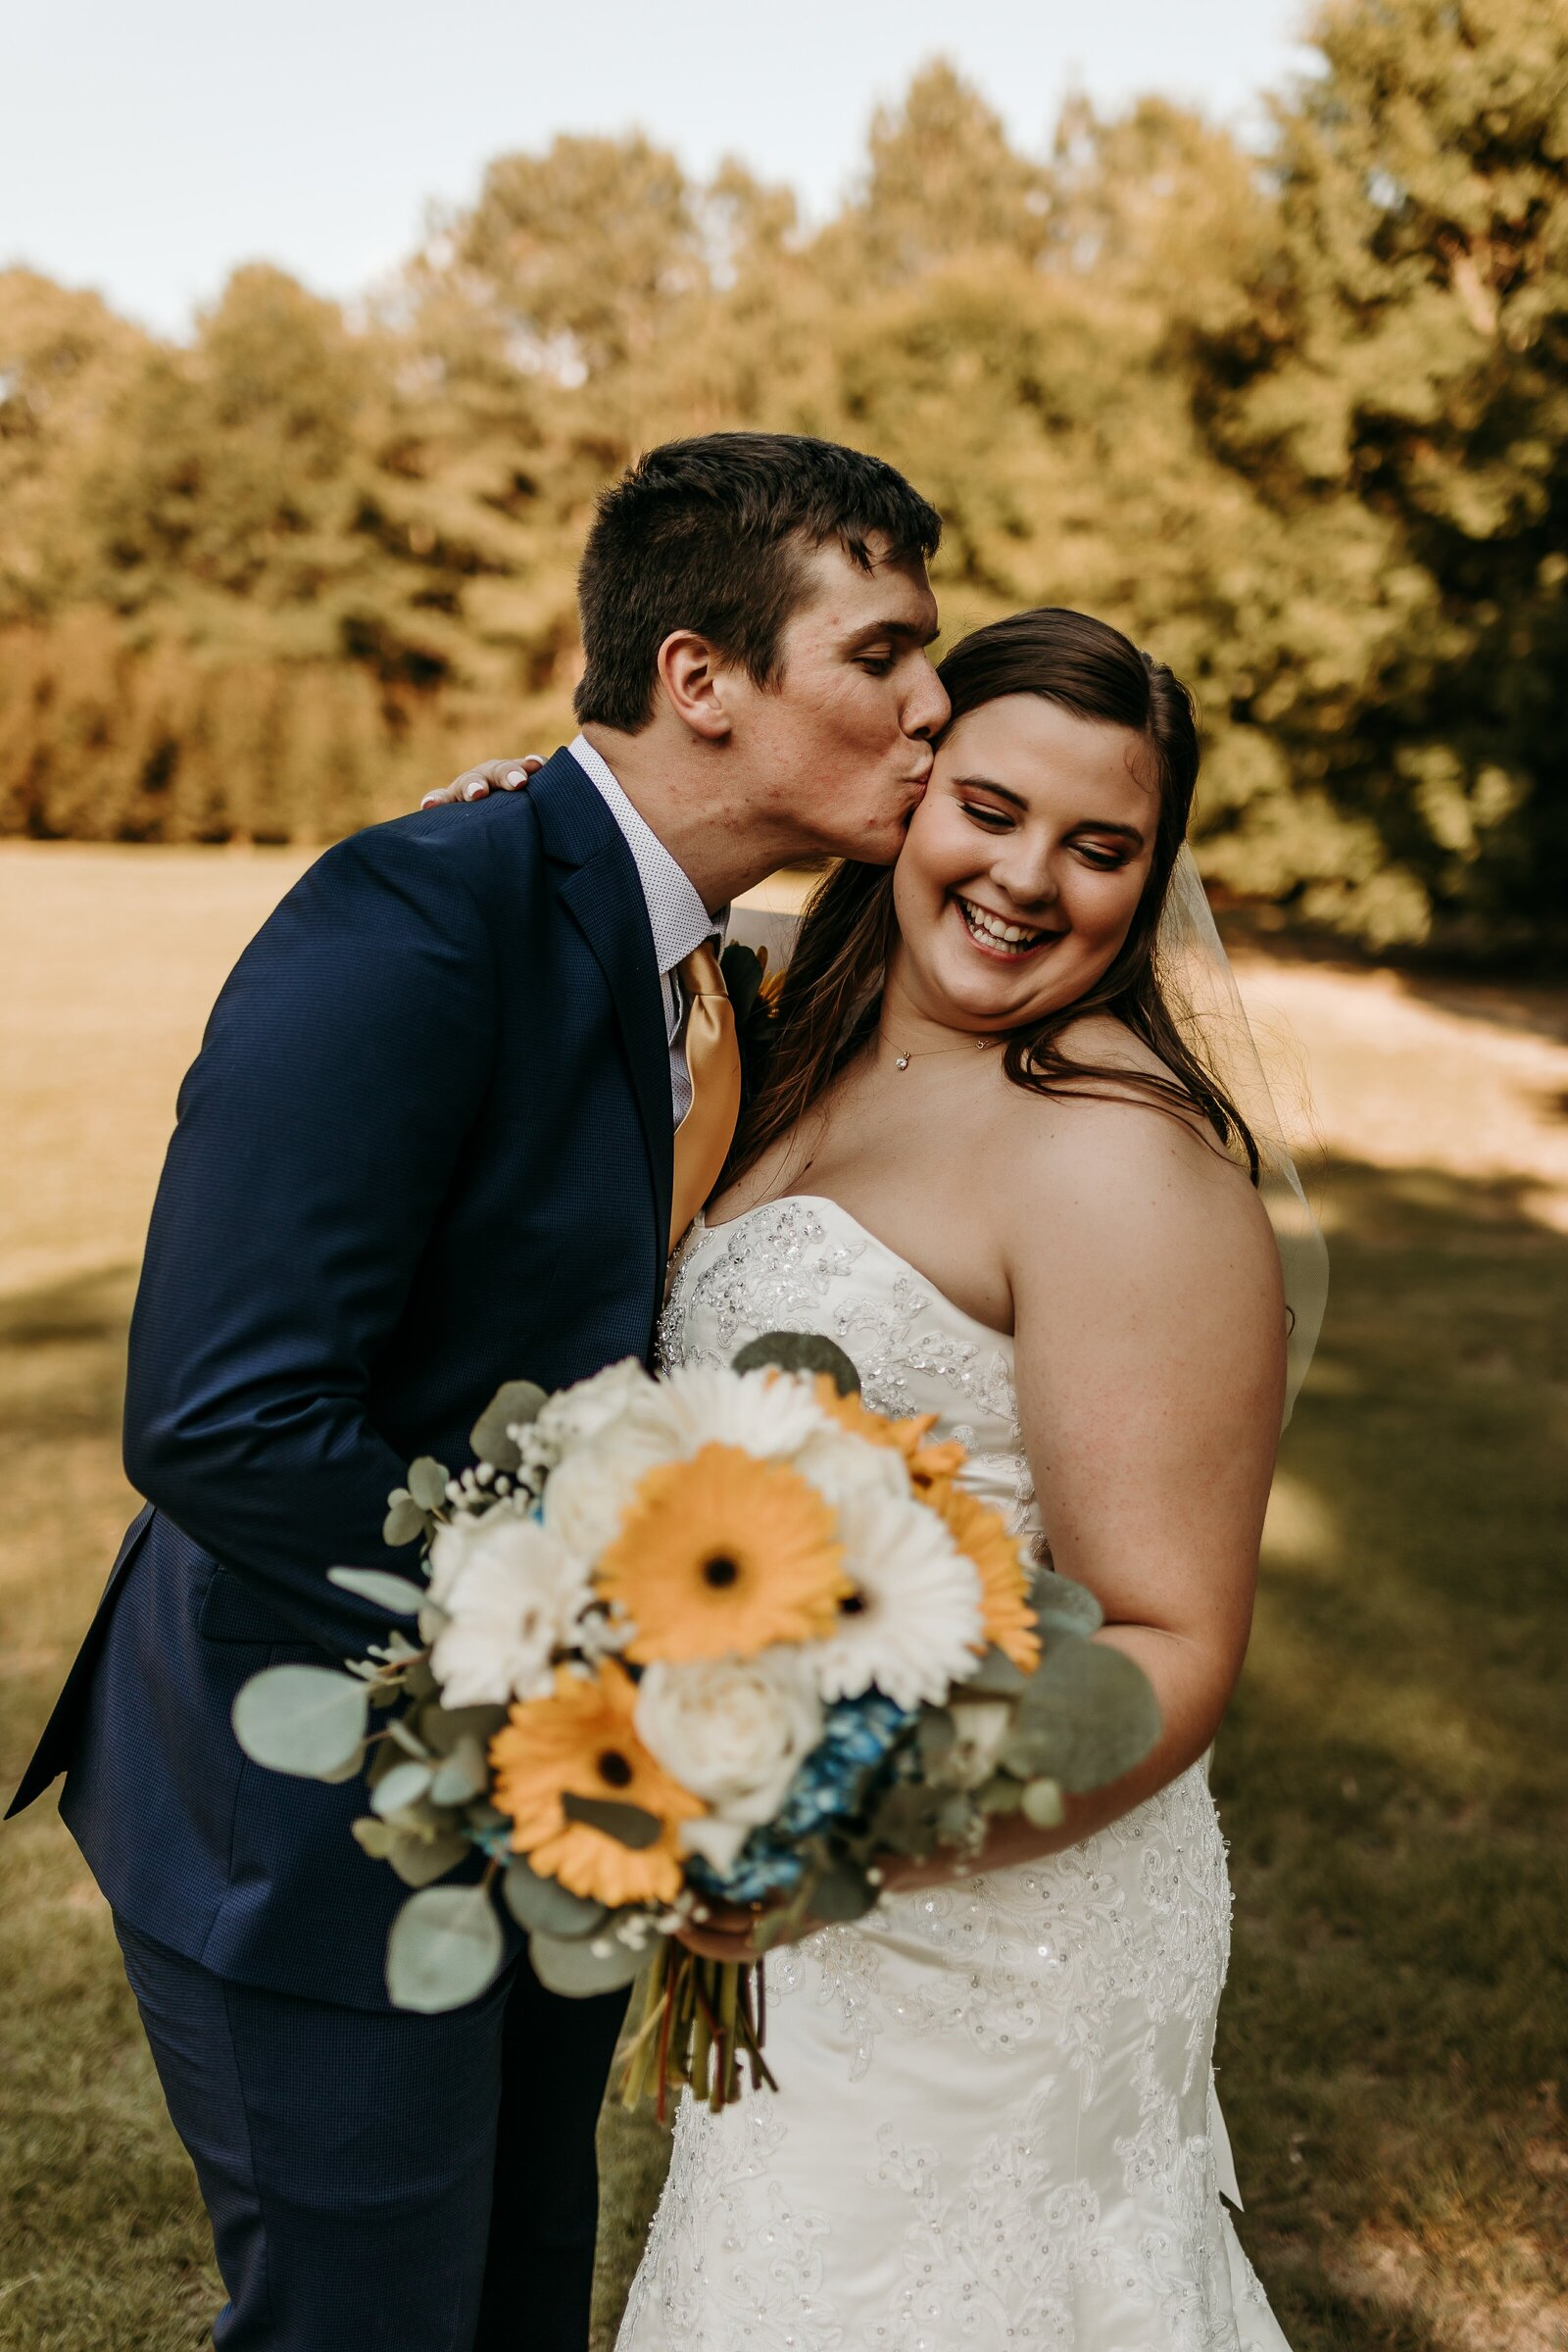 J.Michelle Photography photographs bride and groom kissing portrait